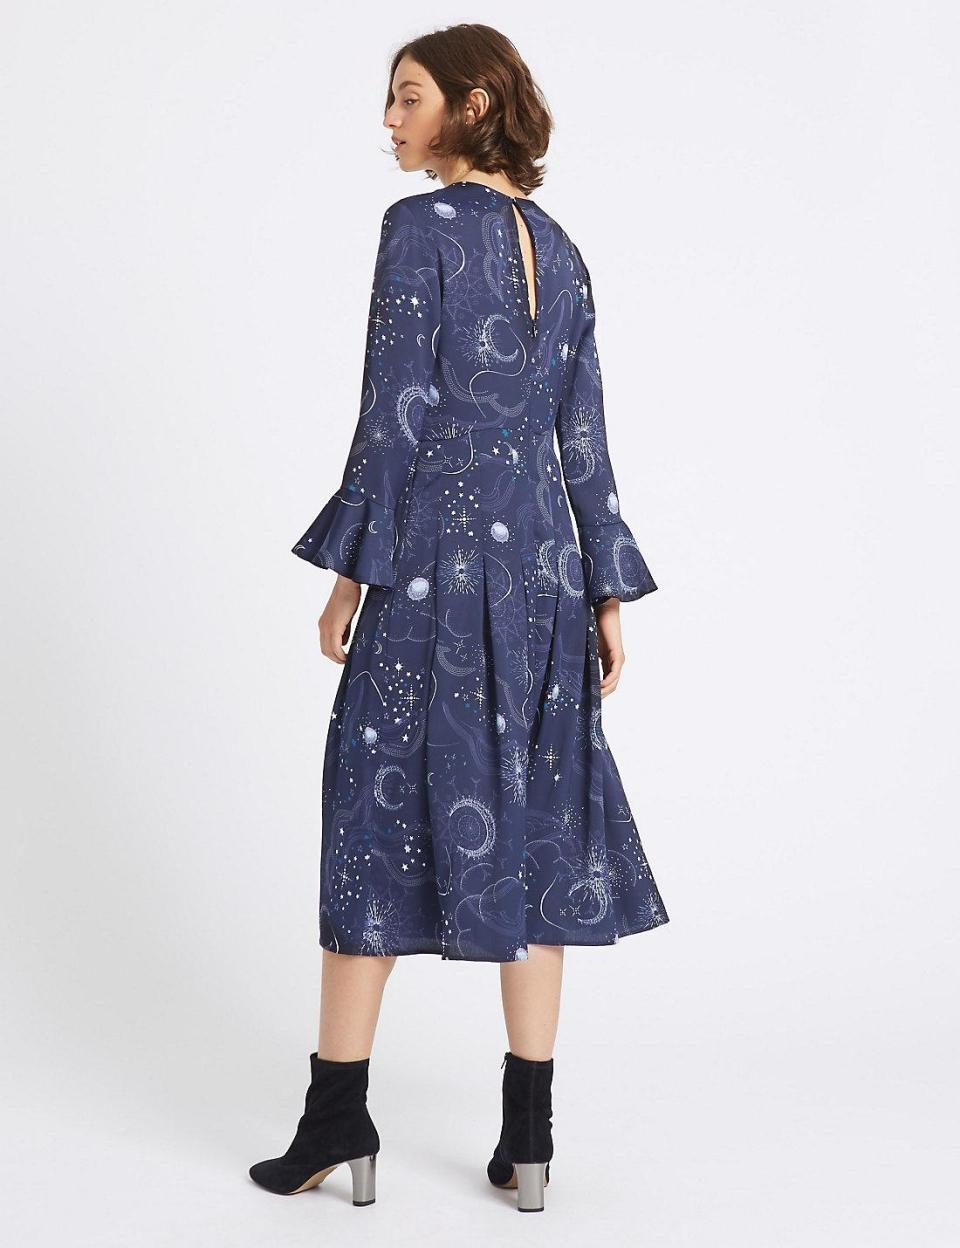 The cosmic girl frock features fluted sleeves and a nipped in waist